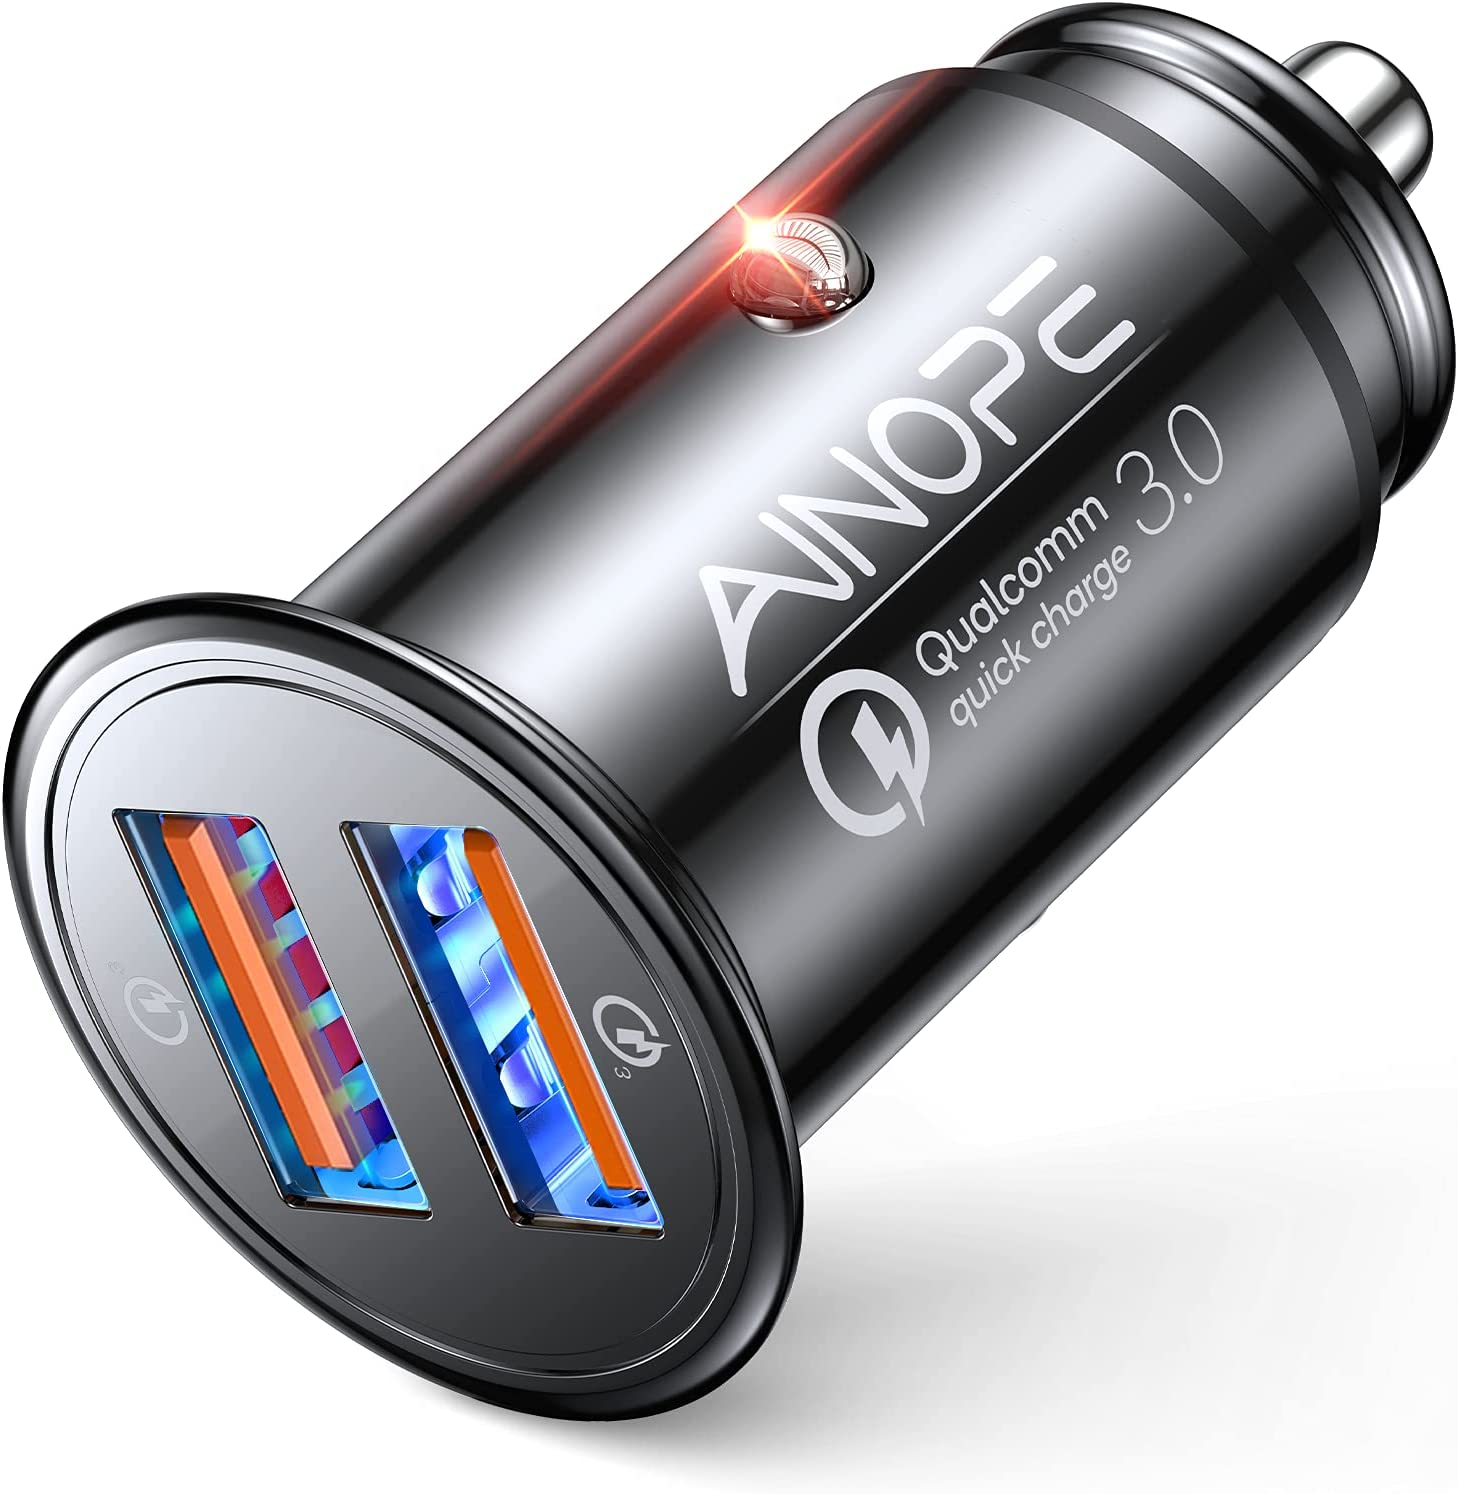 AINOPE Quick Charge 3.0 USB Car Charger